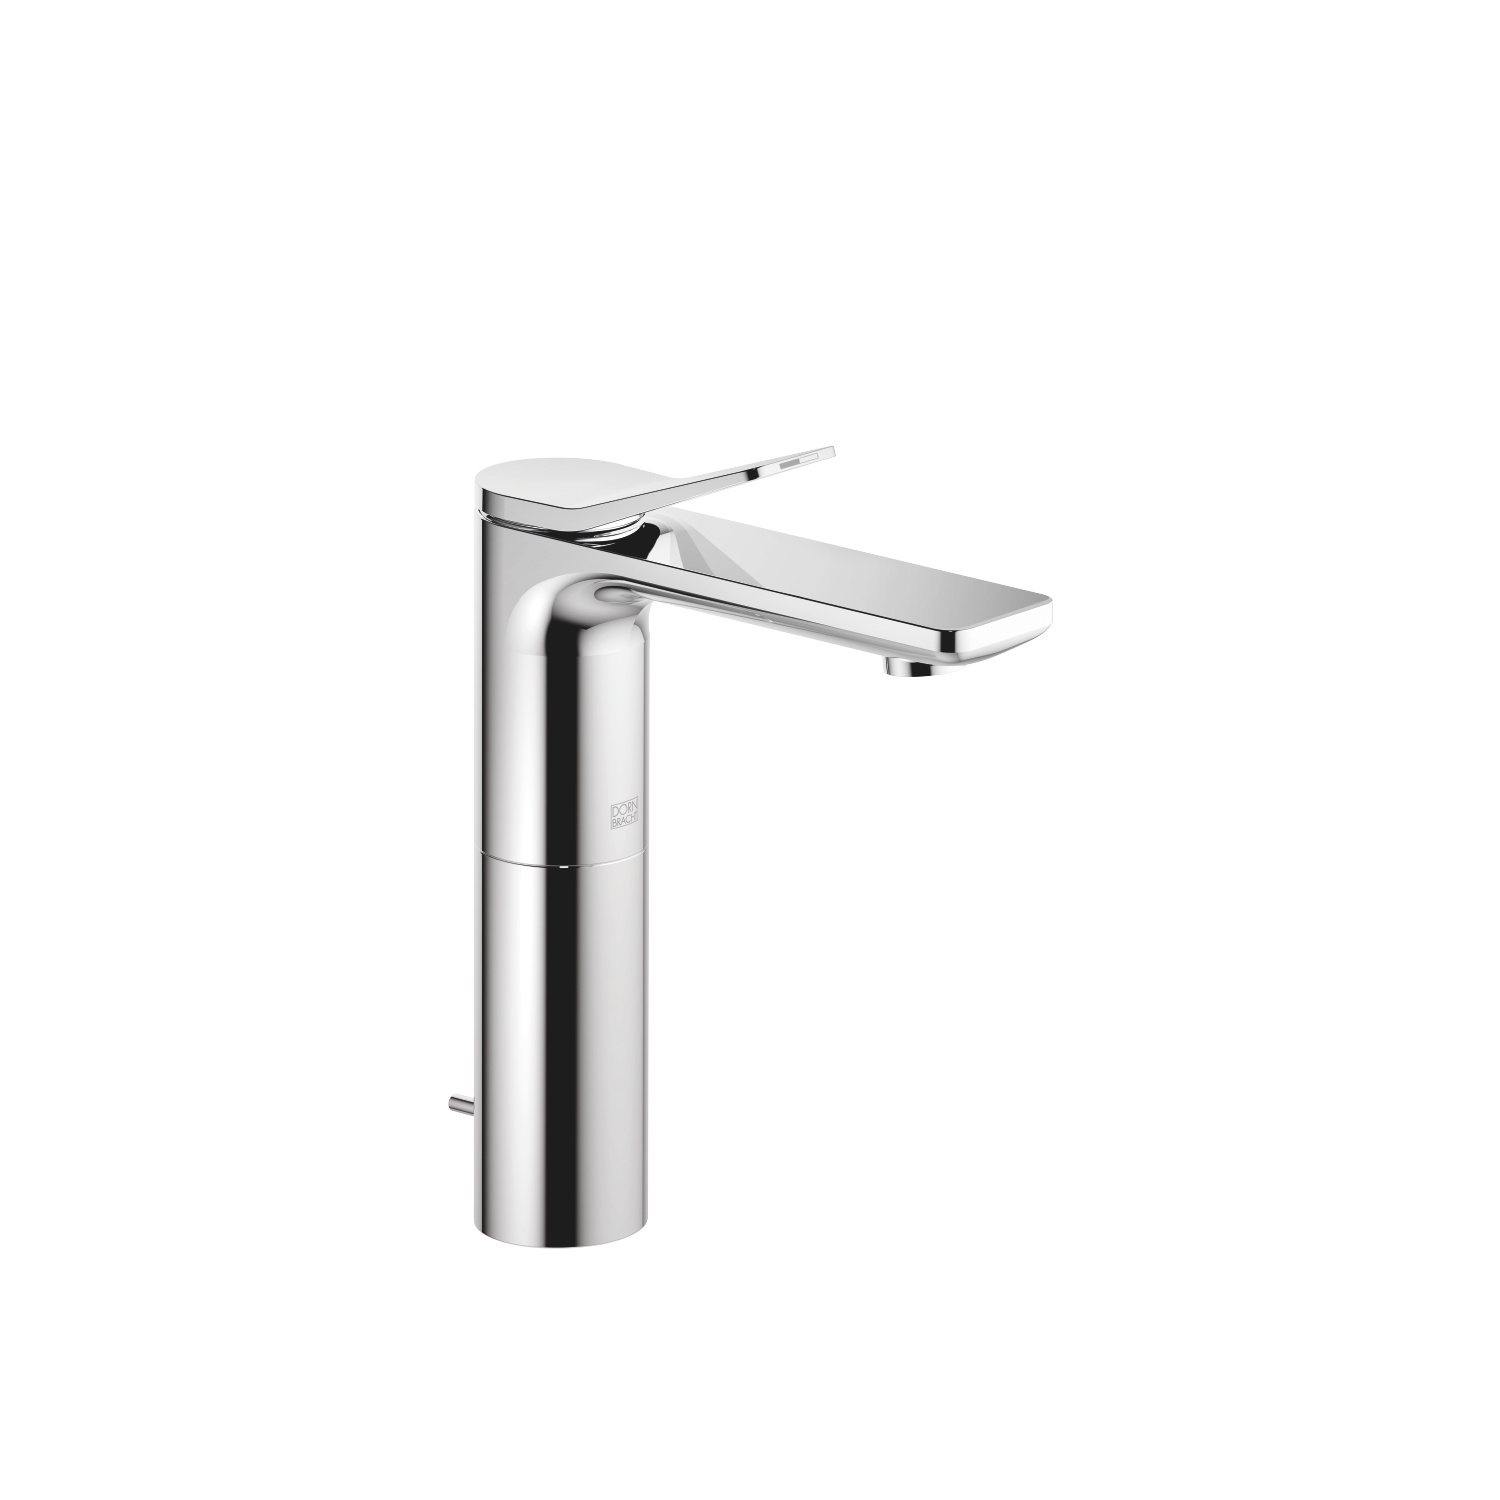 Single-lever basin mixer with high spout with pop-up waste - polished chrome